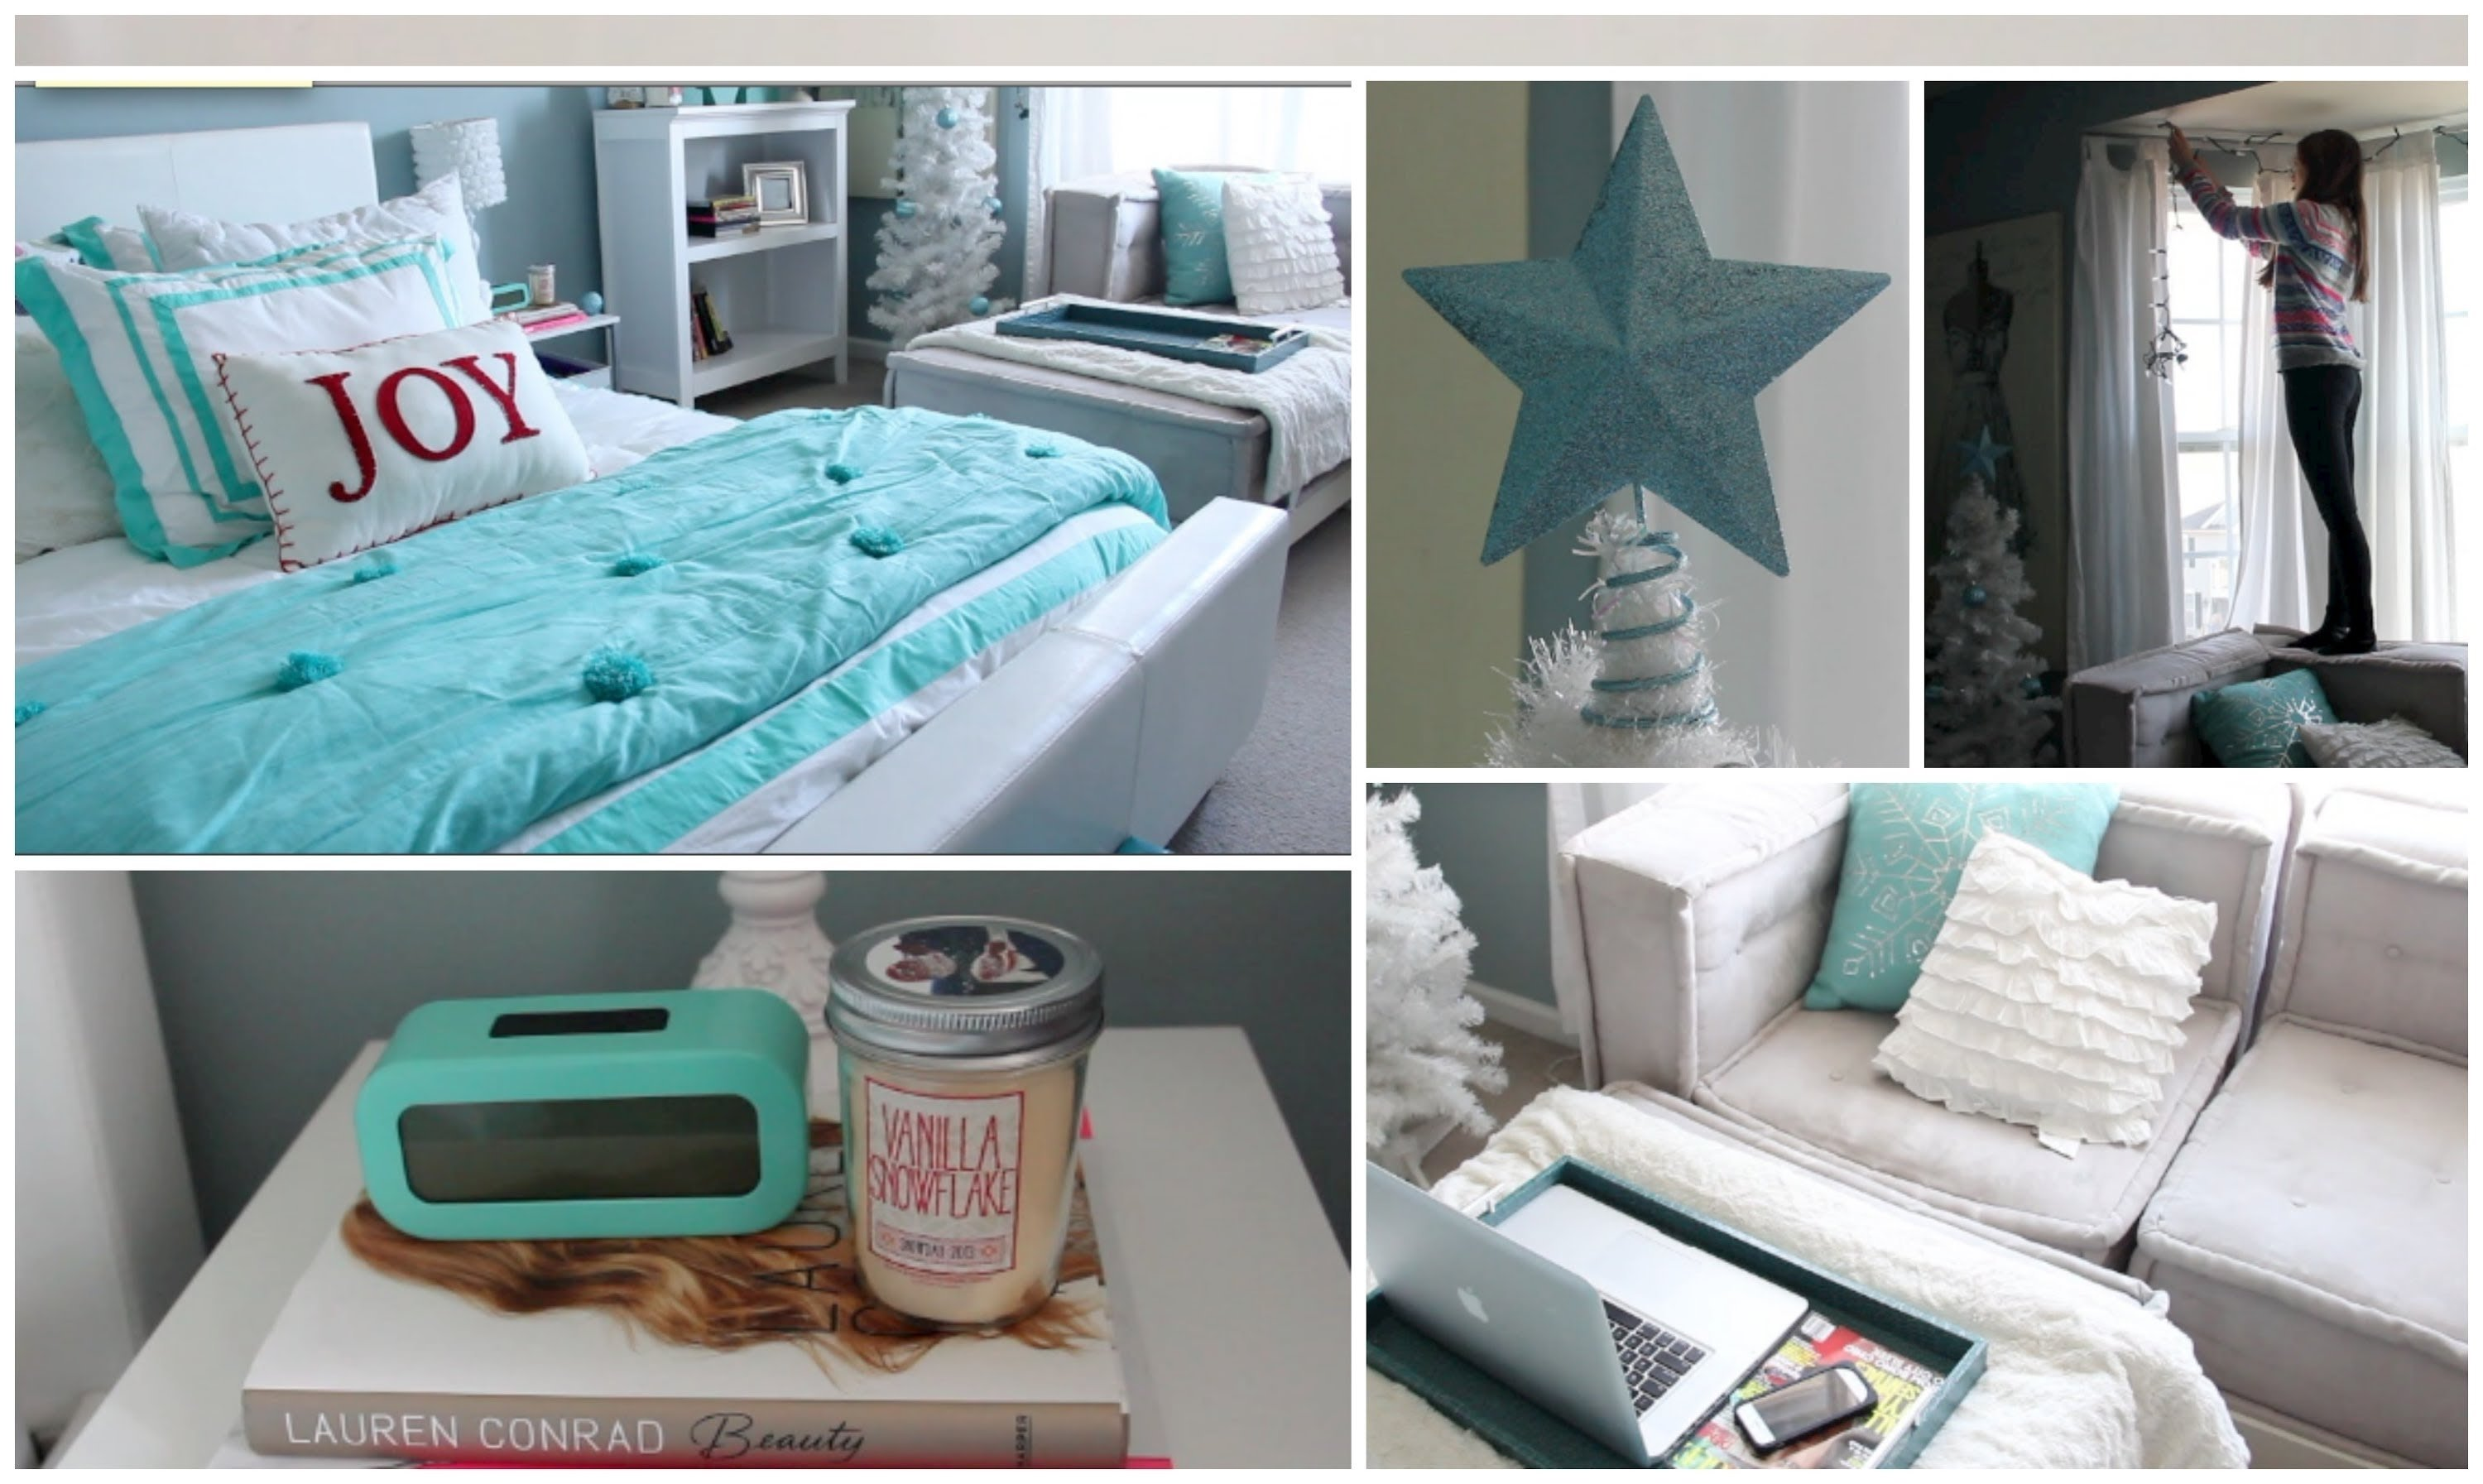 10 Amazing Ideas To Spice Up Your Bedroom spicing up the bedroom ideas best dyi bedroom ideas ideas on 2020